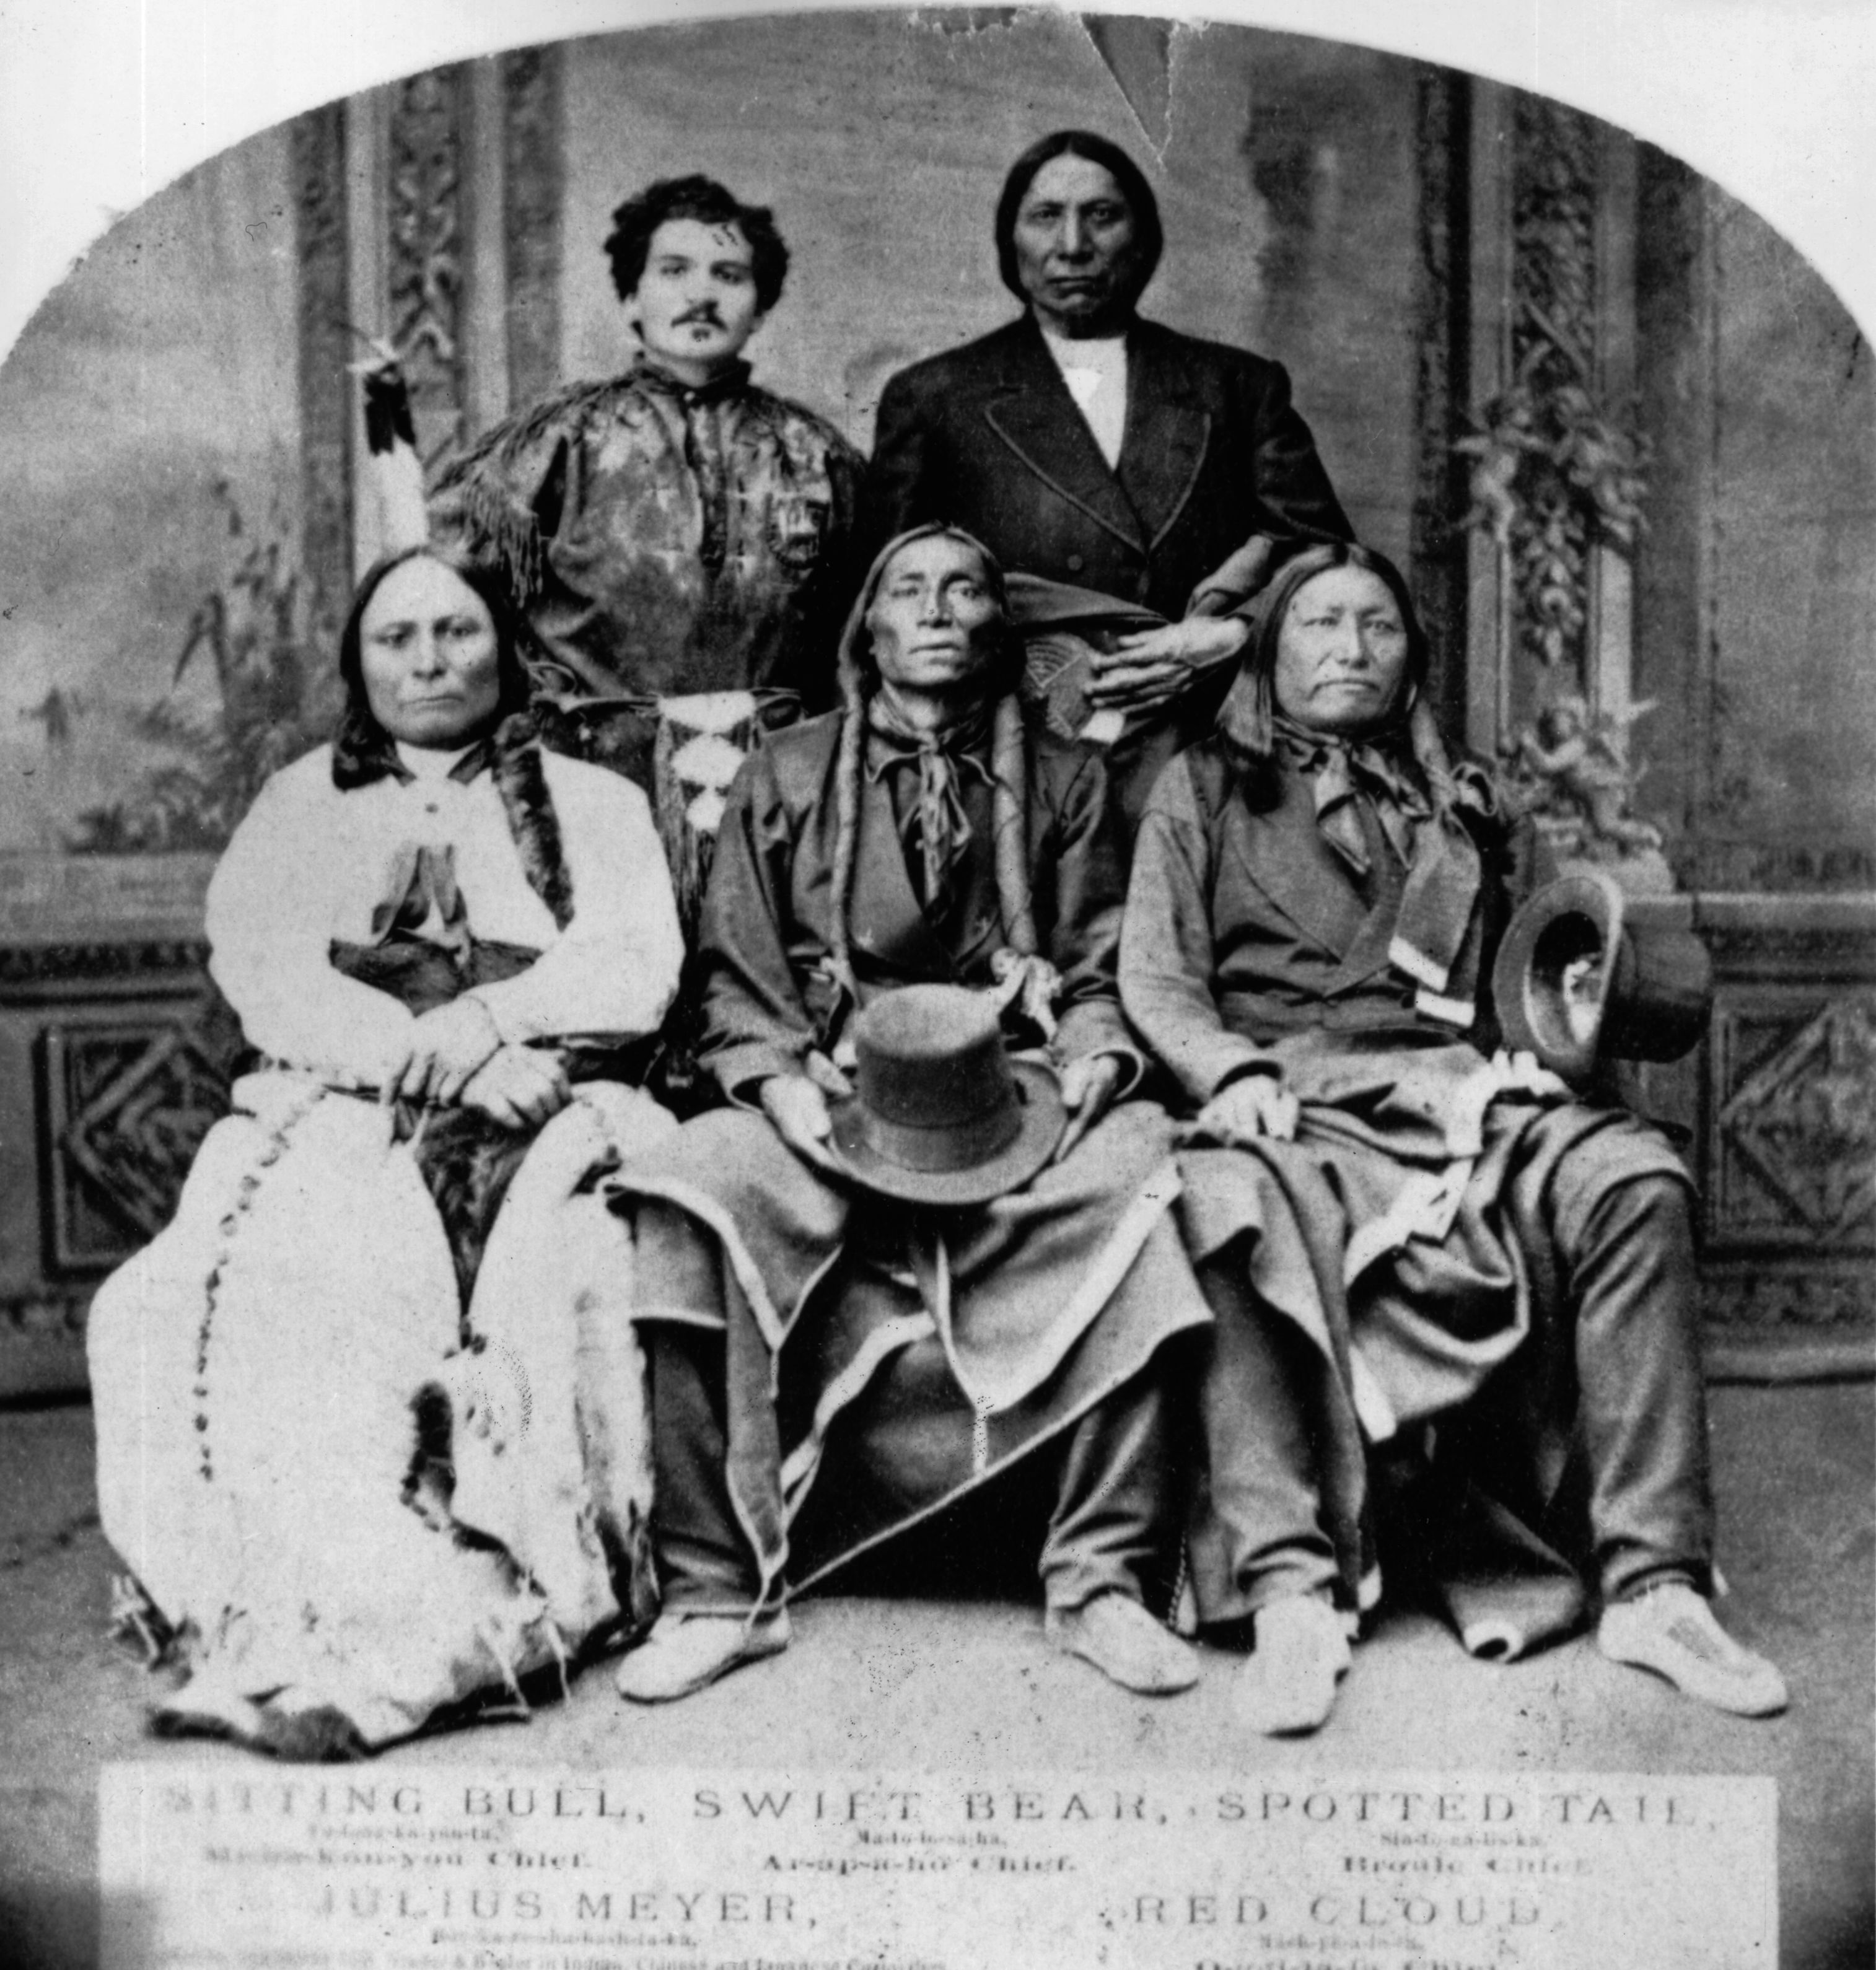 Sitting Bull sits with three other Native Americans and their interpreter